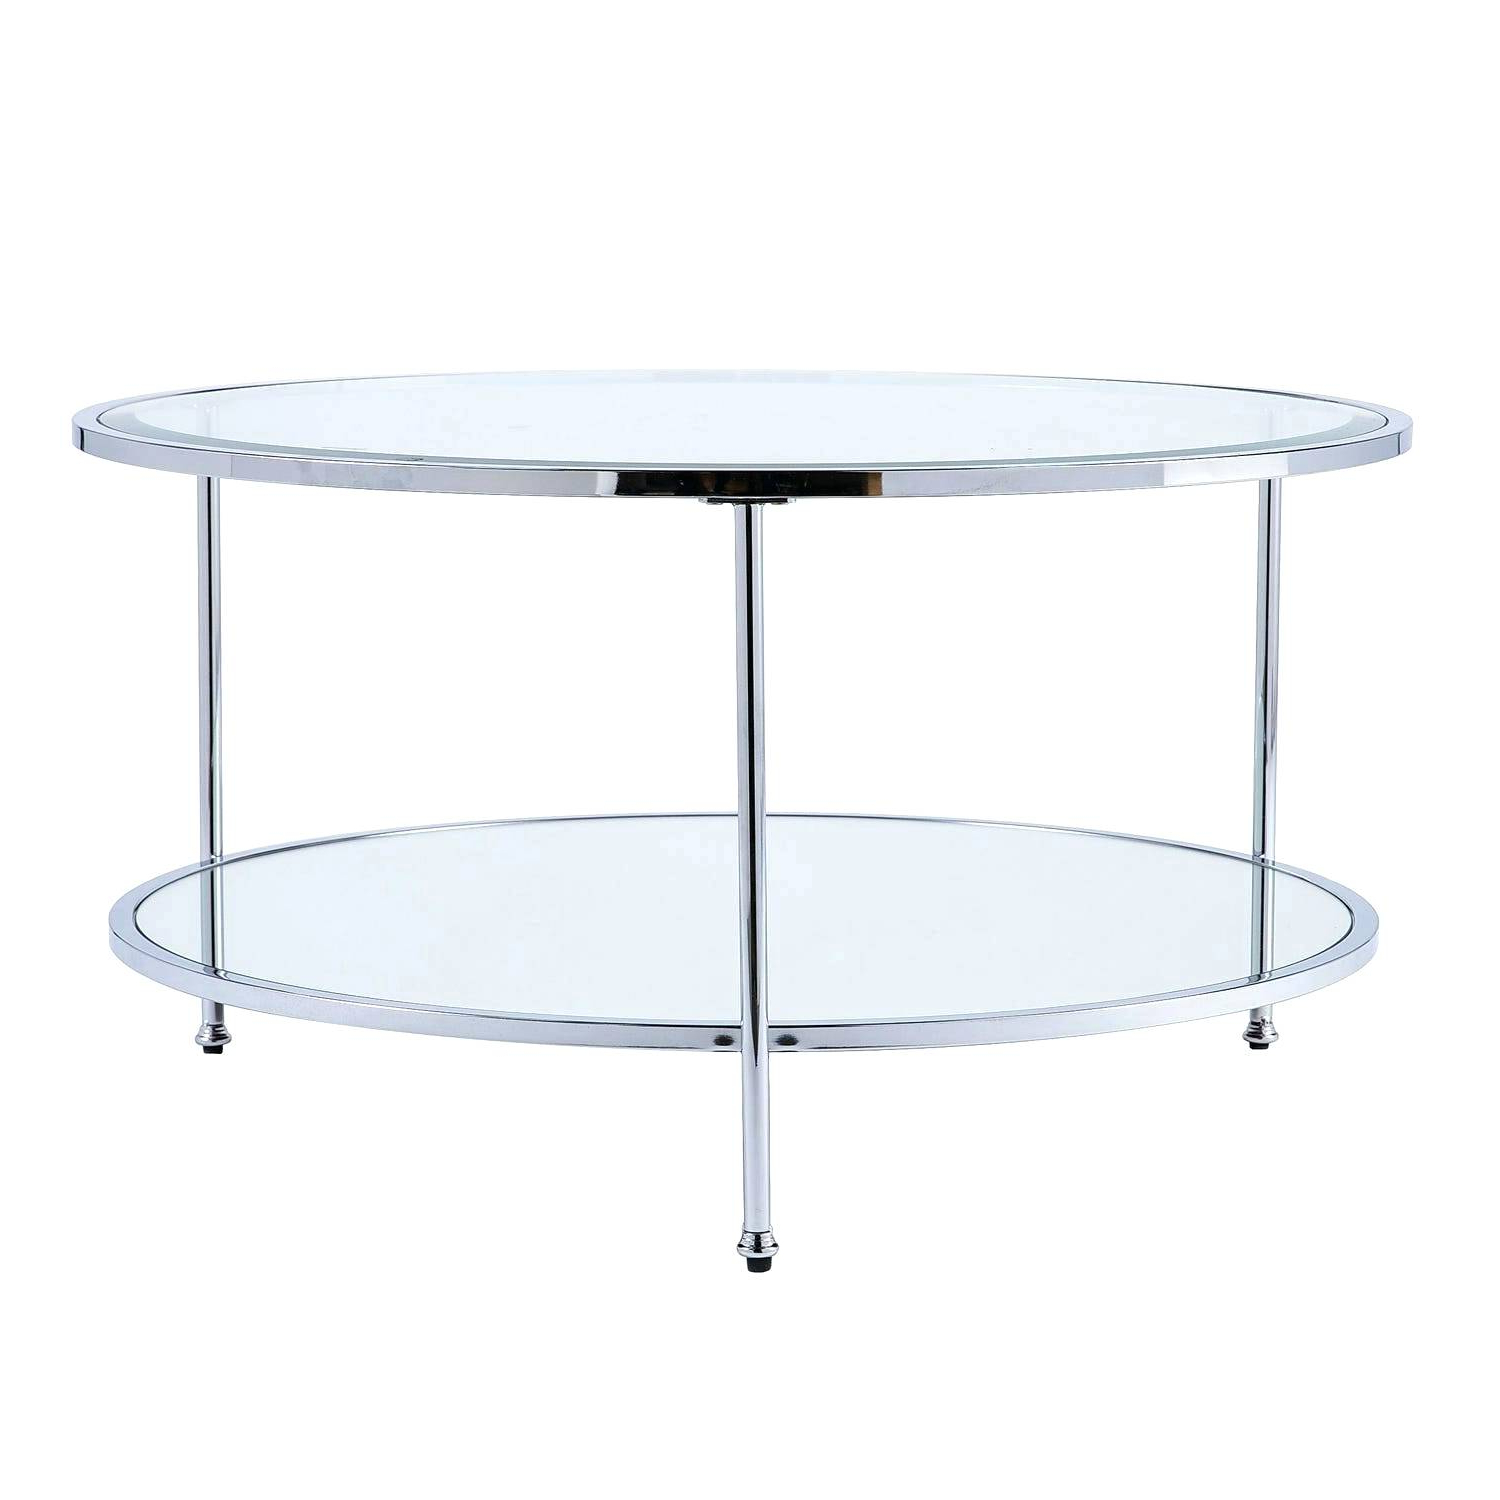 2020 Propel Modern Chrome Oval Coffee Tables With Regard To Glass And Chrome Coffee Table – Nickihover.co (Gallery 9 of 20)